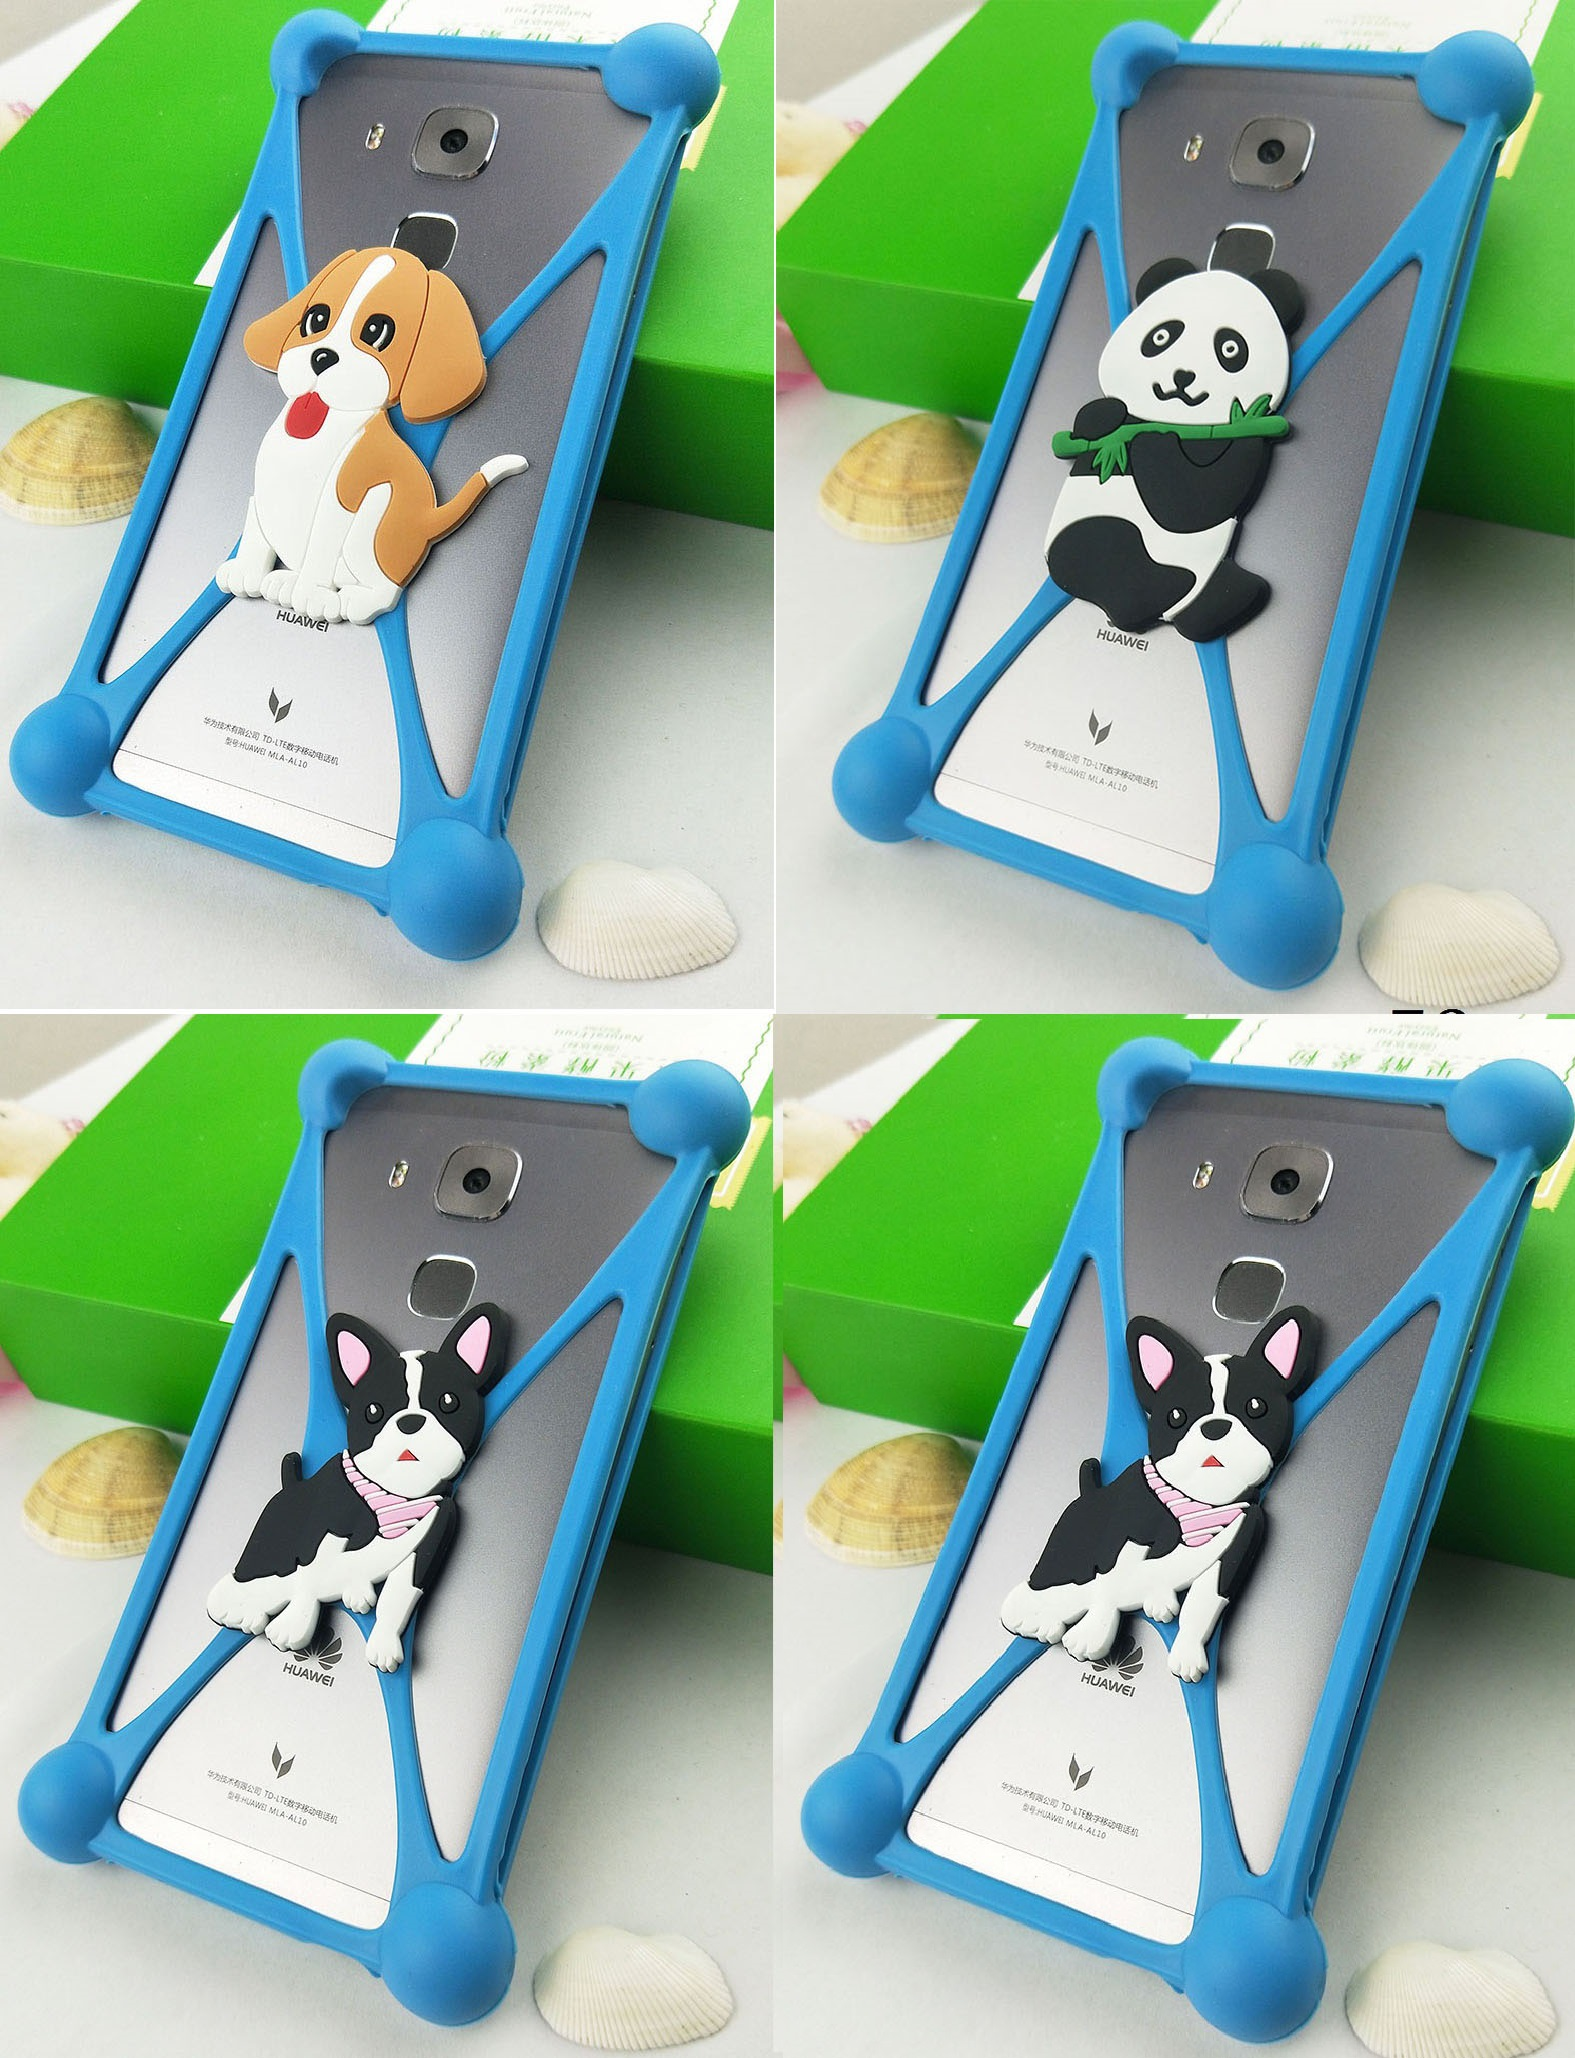 Luxury Cartoon Phone <font><b>Case</b></font> Cover For <font><b>TP</b></font>-<font><b>Link</b></font> <font><b>Neffos</b></font> C7 Lite <font><b>C5</b></font> <font><b>PLUS</b></font> P1 X9 C9 C9A C7A <font><b>C5</b></font> C5A C5S N1 Y5S X1 Lite image